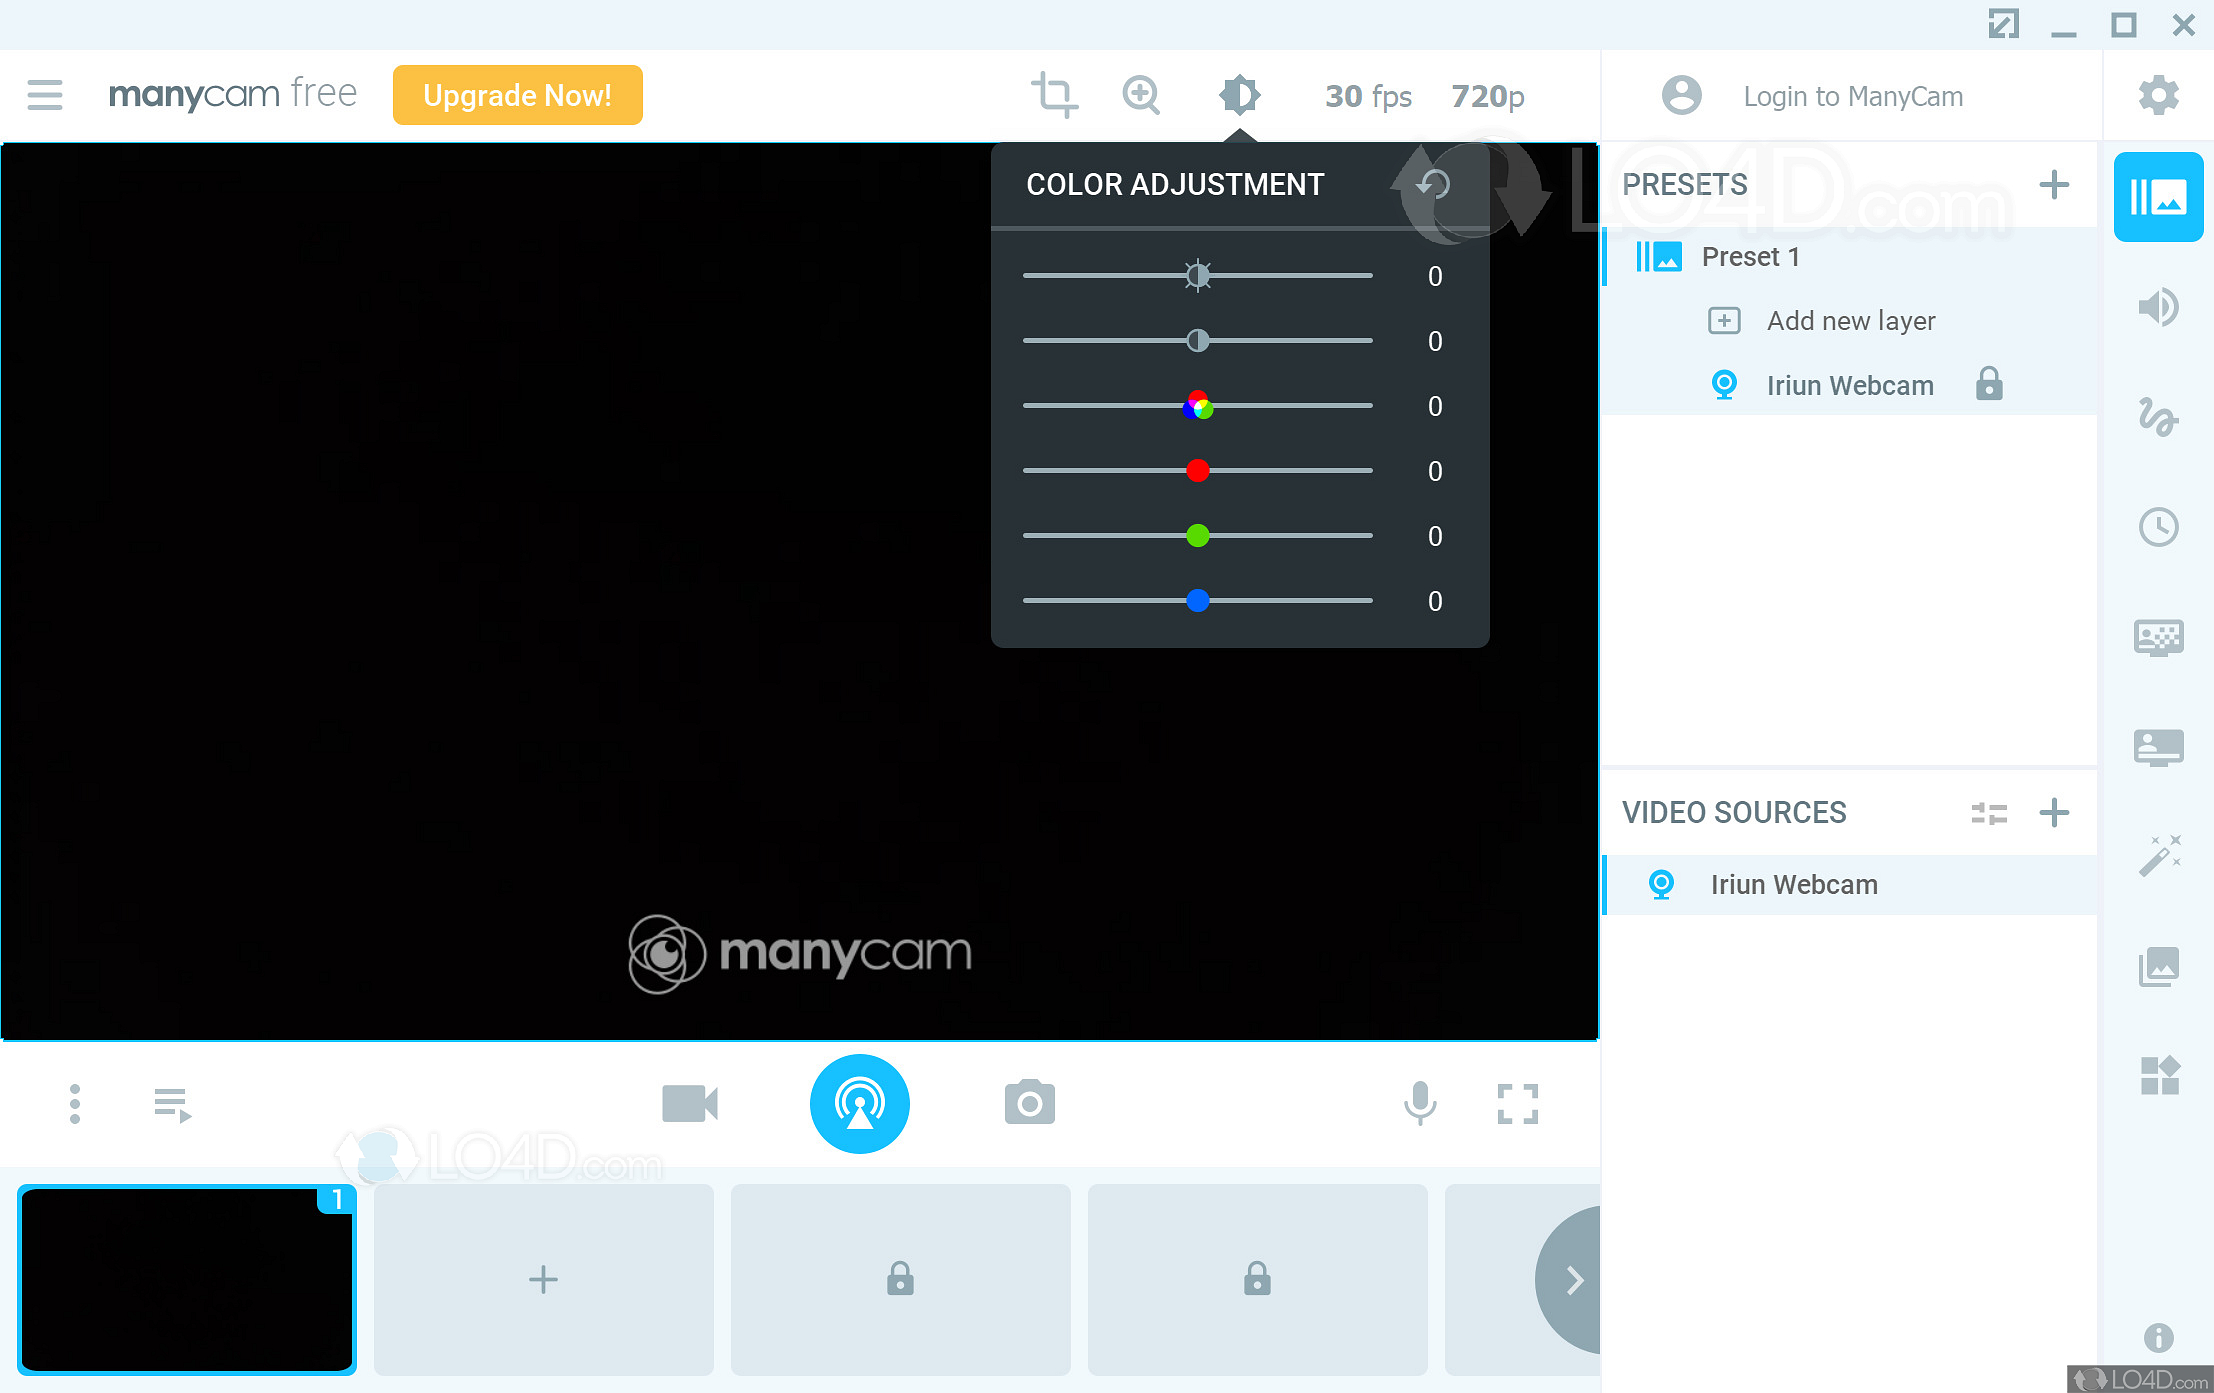 manycam free download for windows